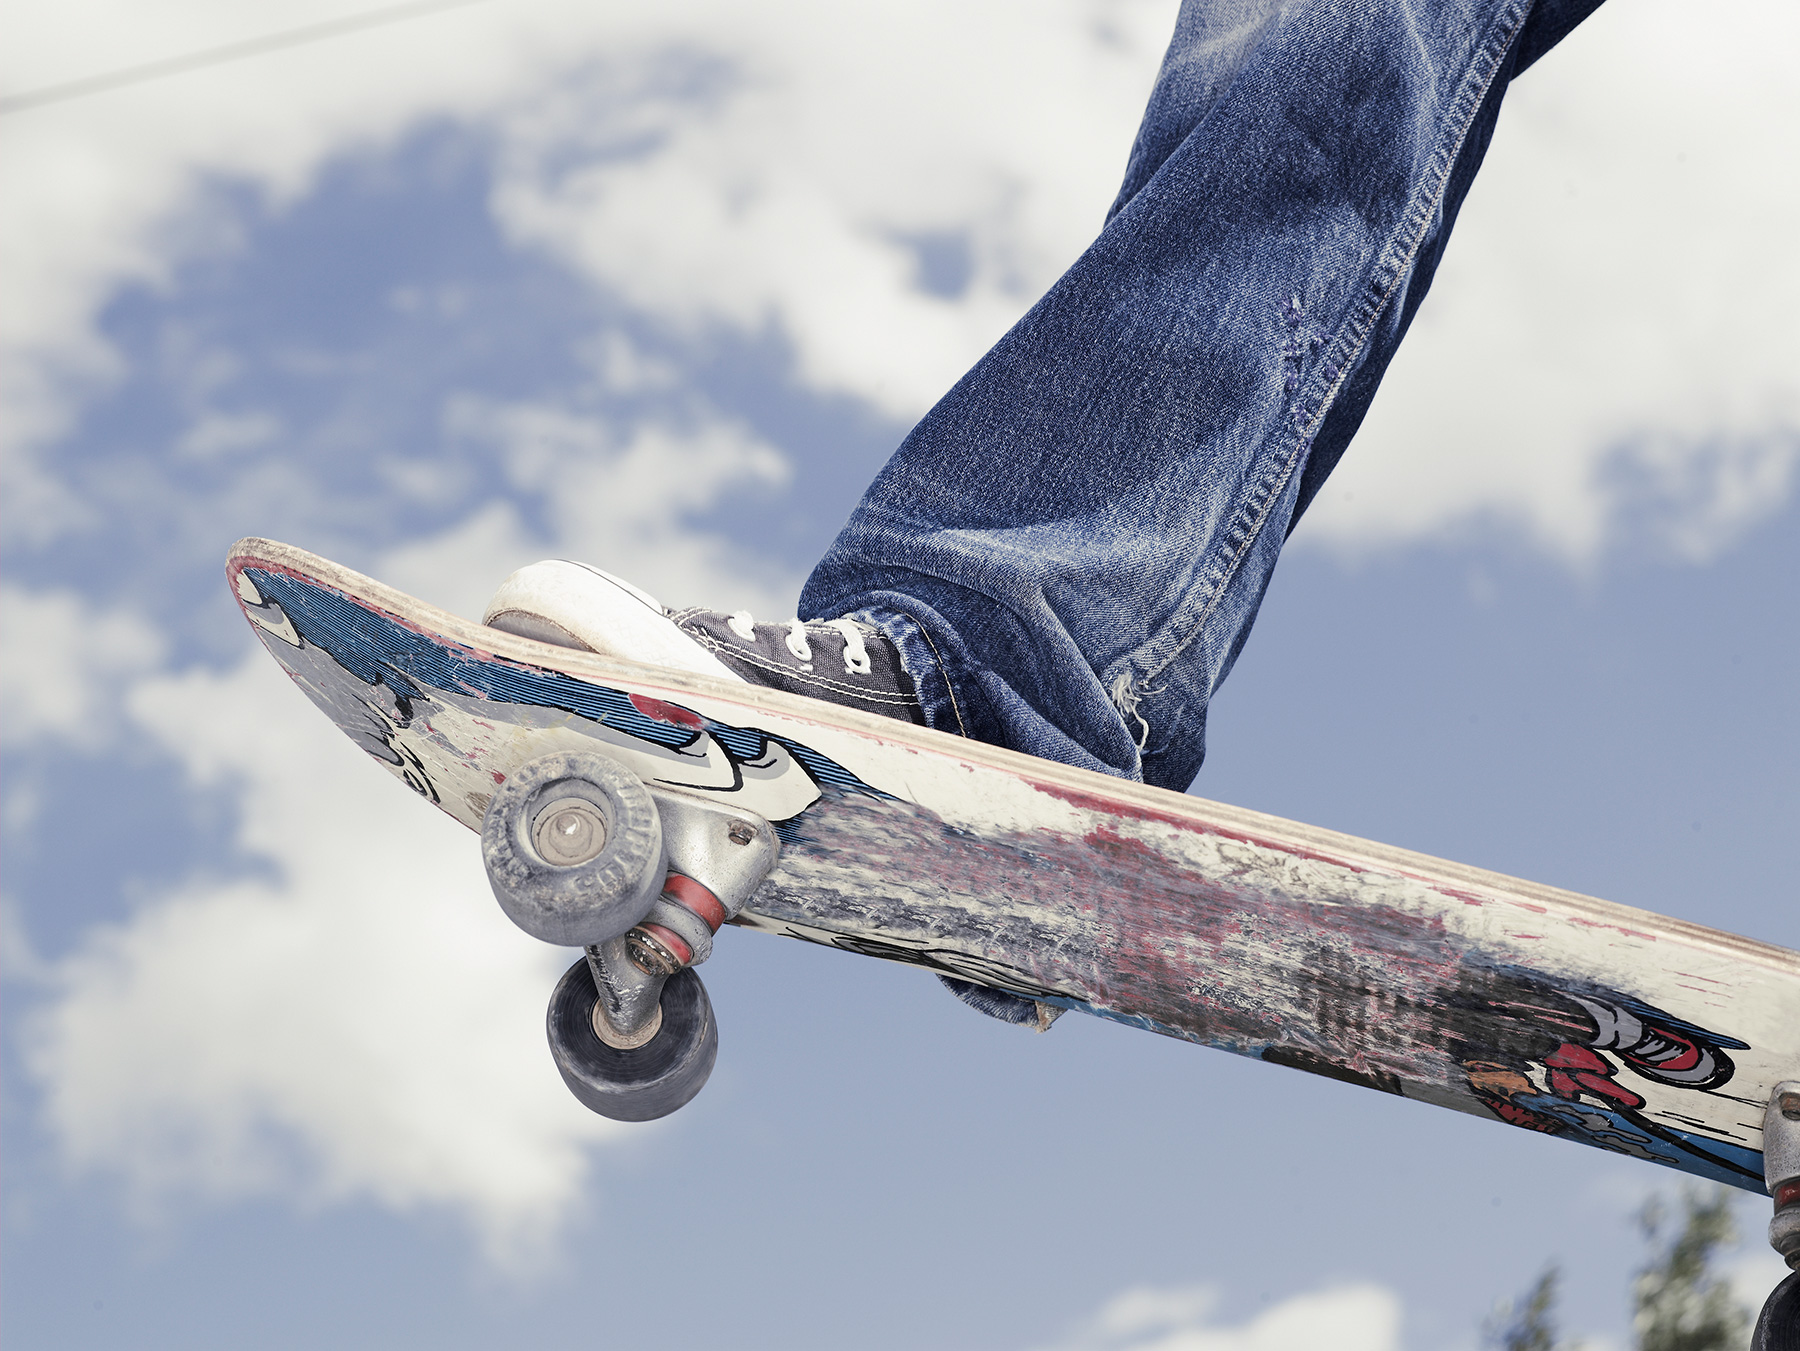 Closeup of sneaker on skateboard